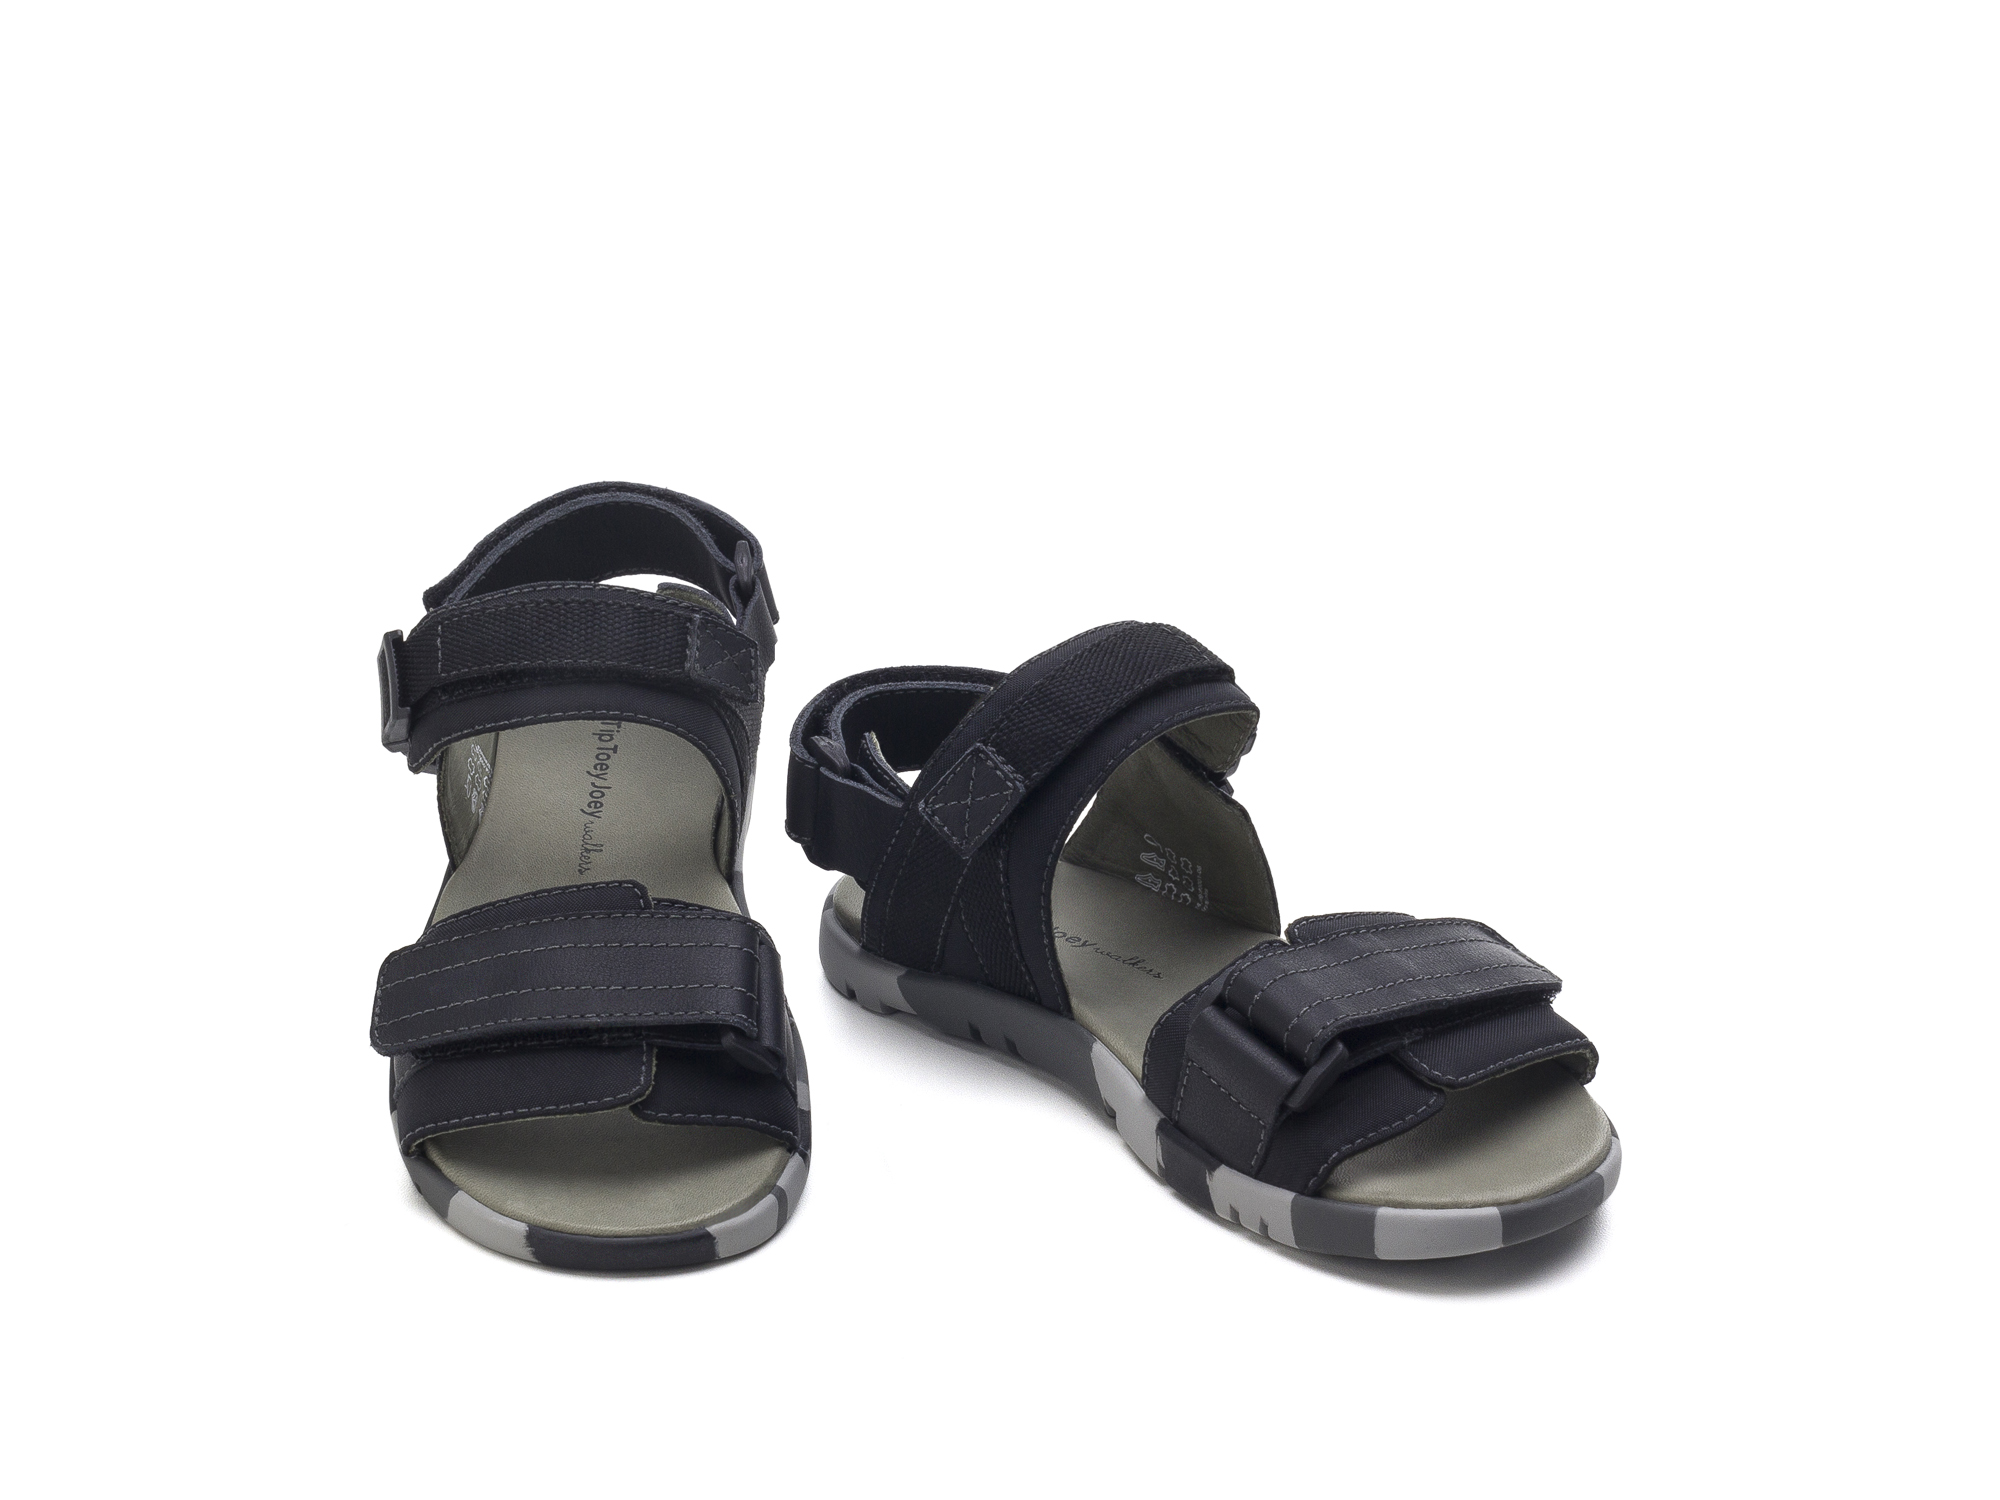 Sandália Soldier Black Nylon/ Black Junior 4 à 8 anos - 2